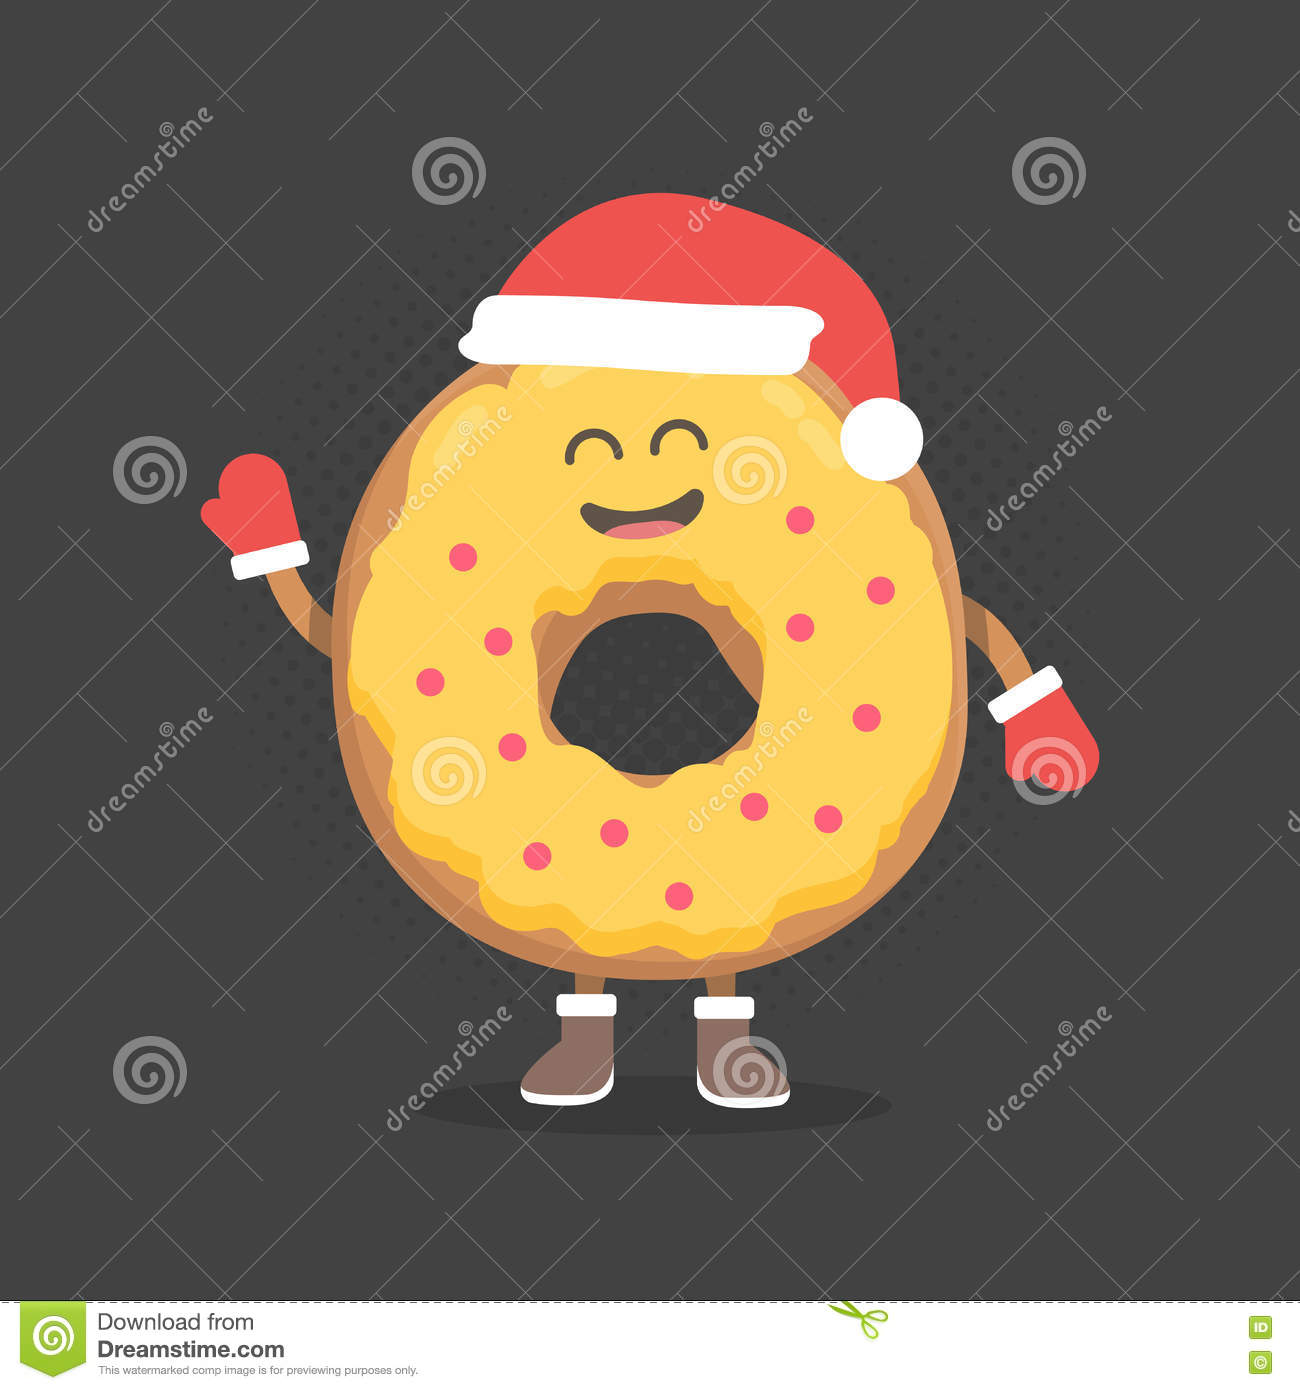 smile new year  christmas smile royalty free stock image Helping Hands Clip Art Helping Hands Clip Art